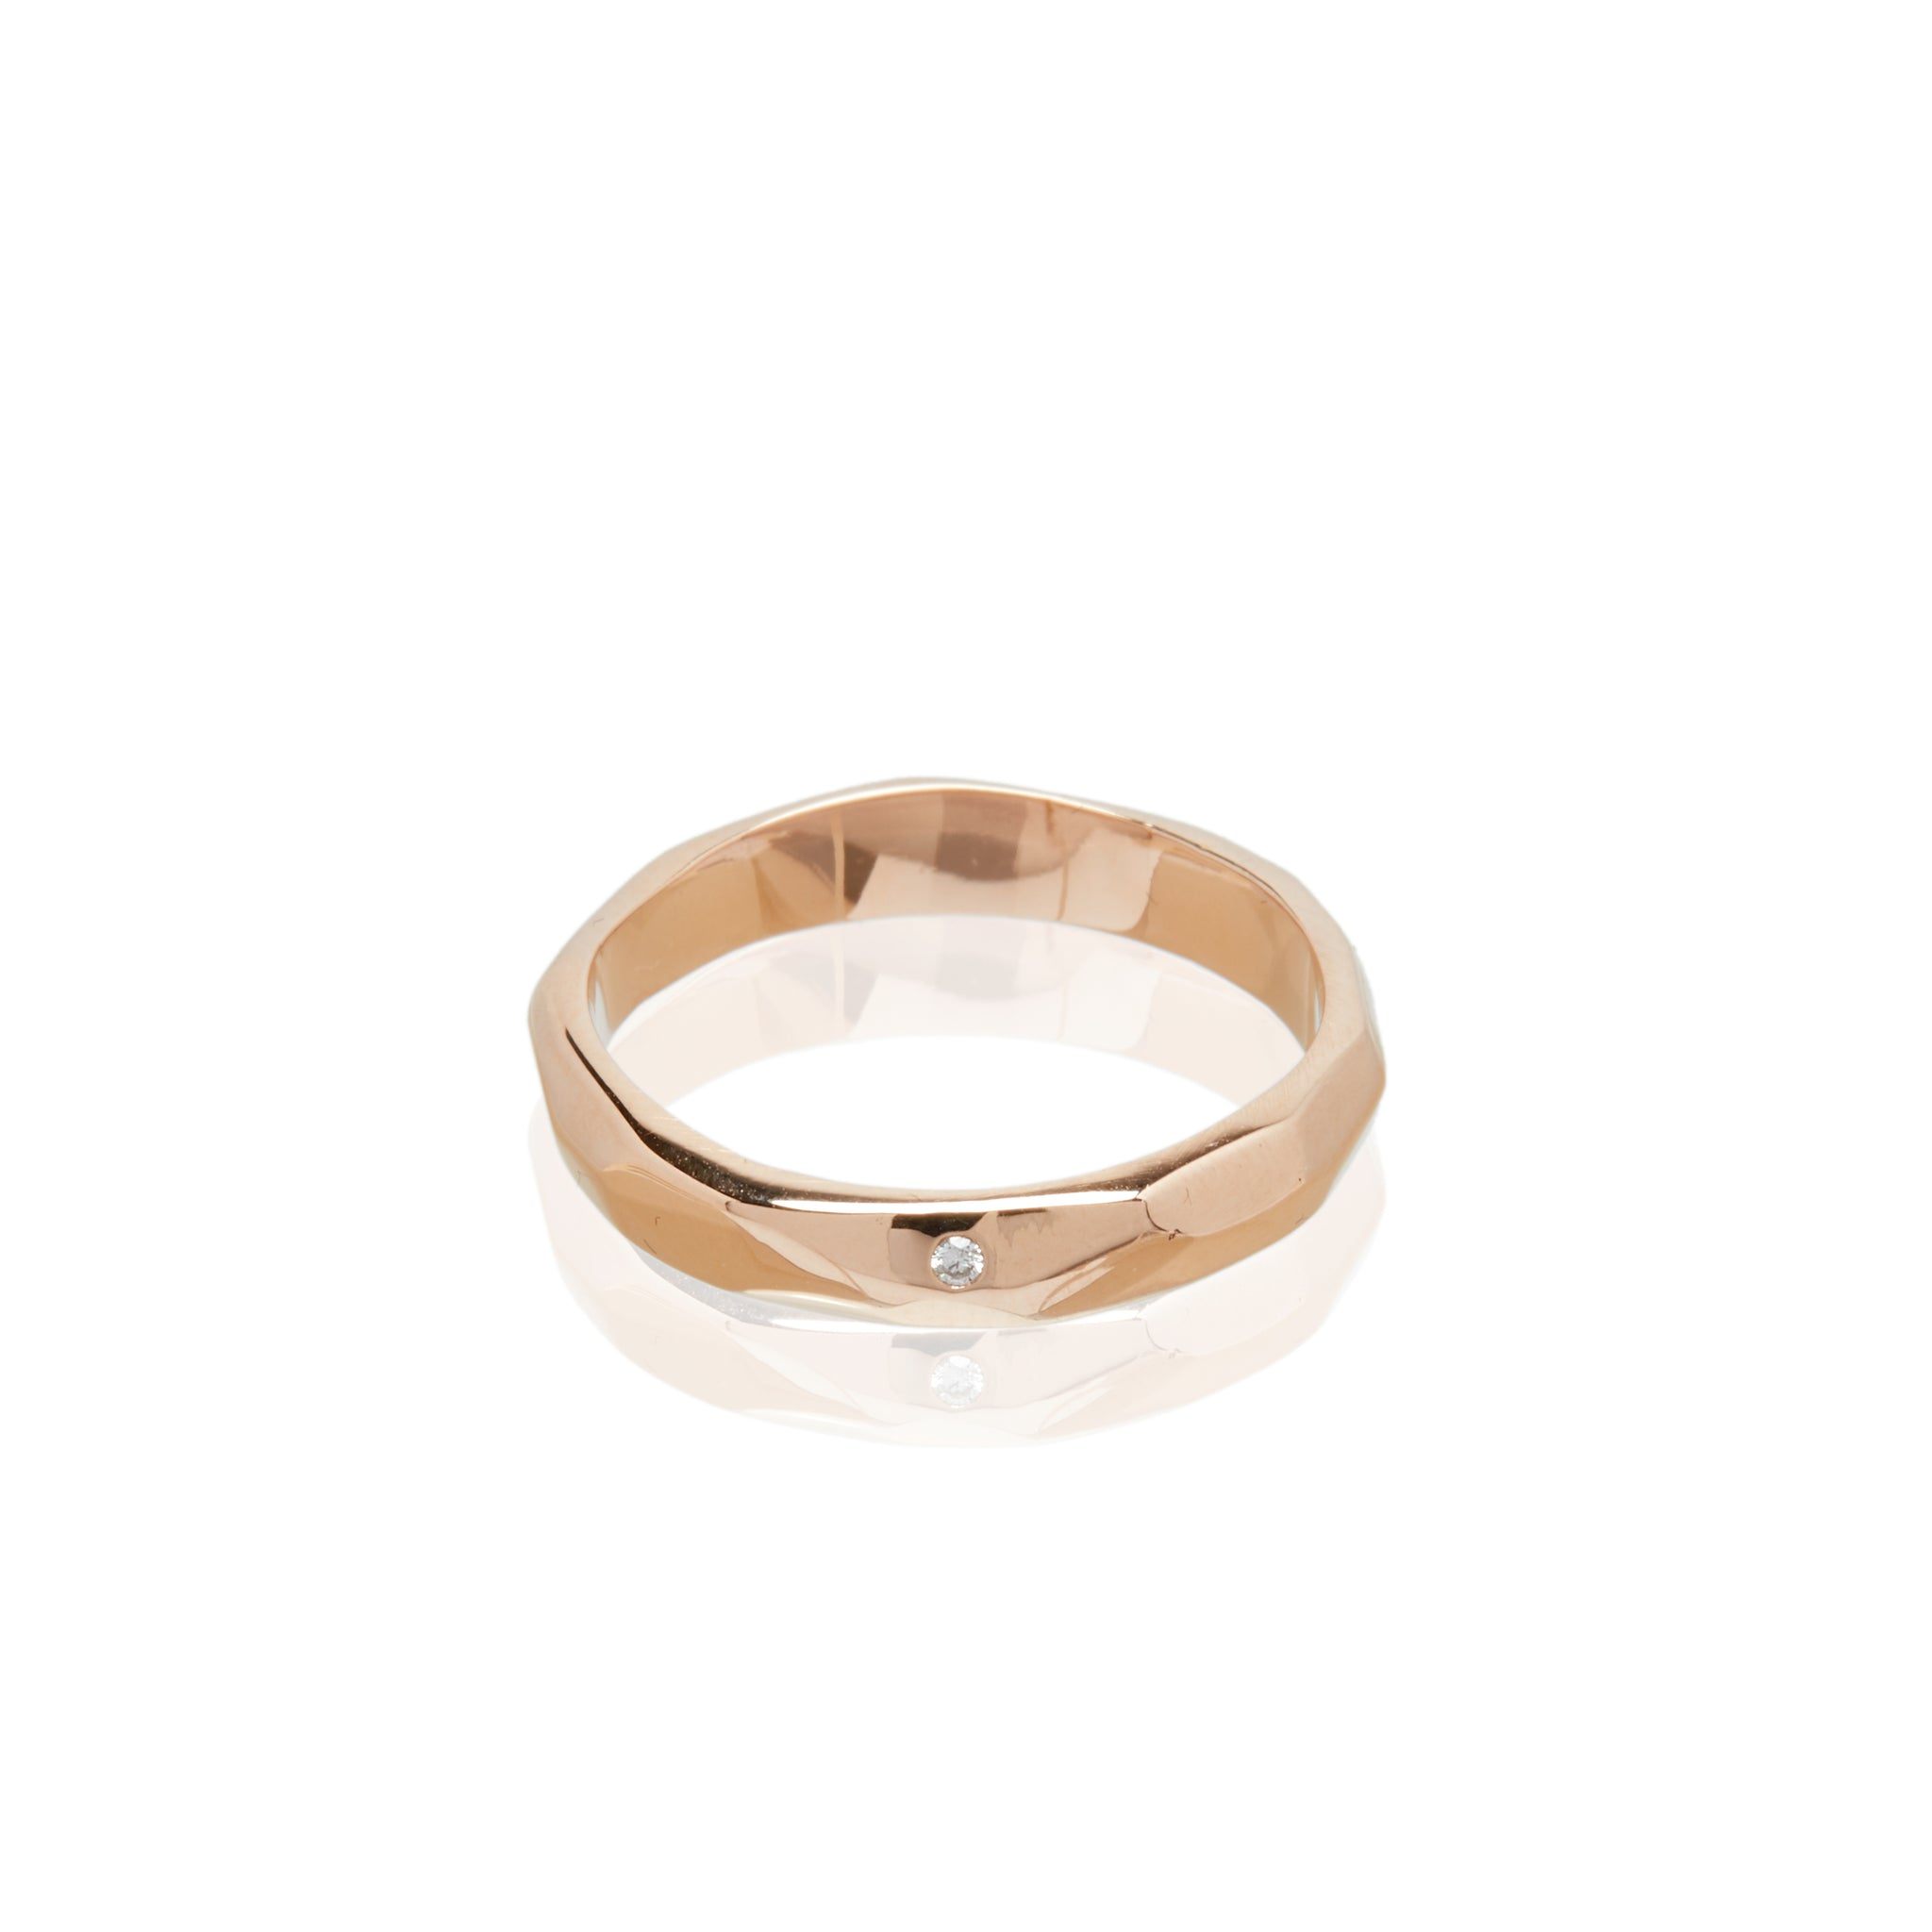 rose gold diamond ring alternative wedding ring